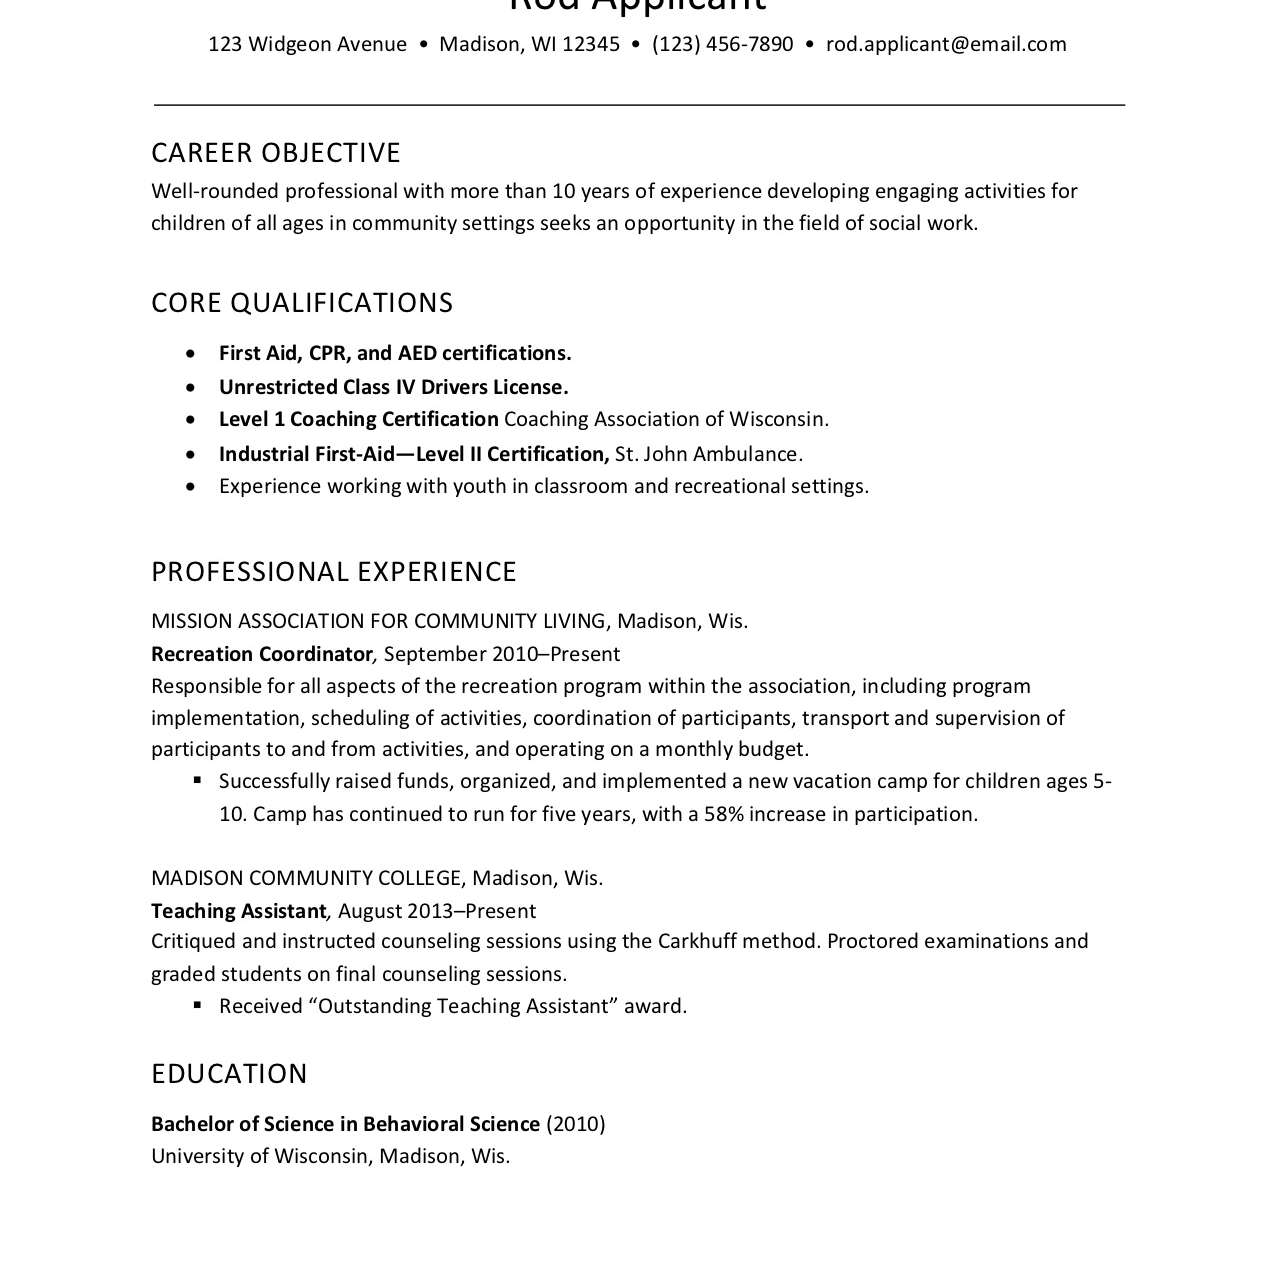 resume example for childcare social services worker of child care free dynamic templates Resume Example Of A Child Care Resume